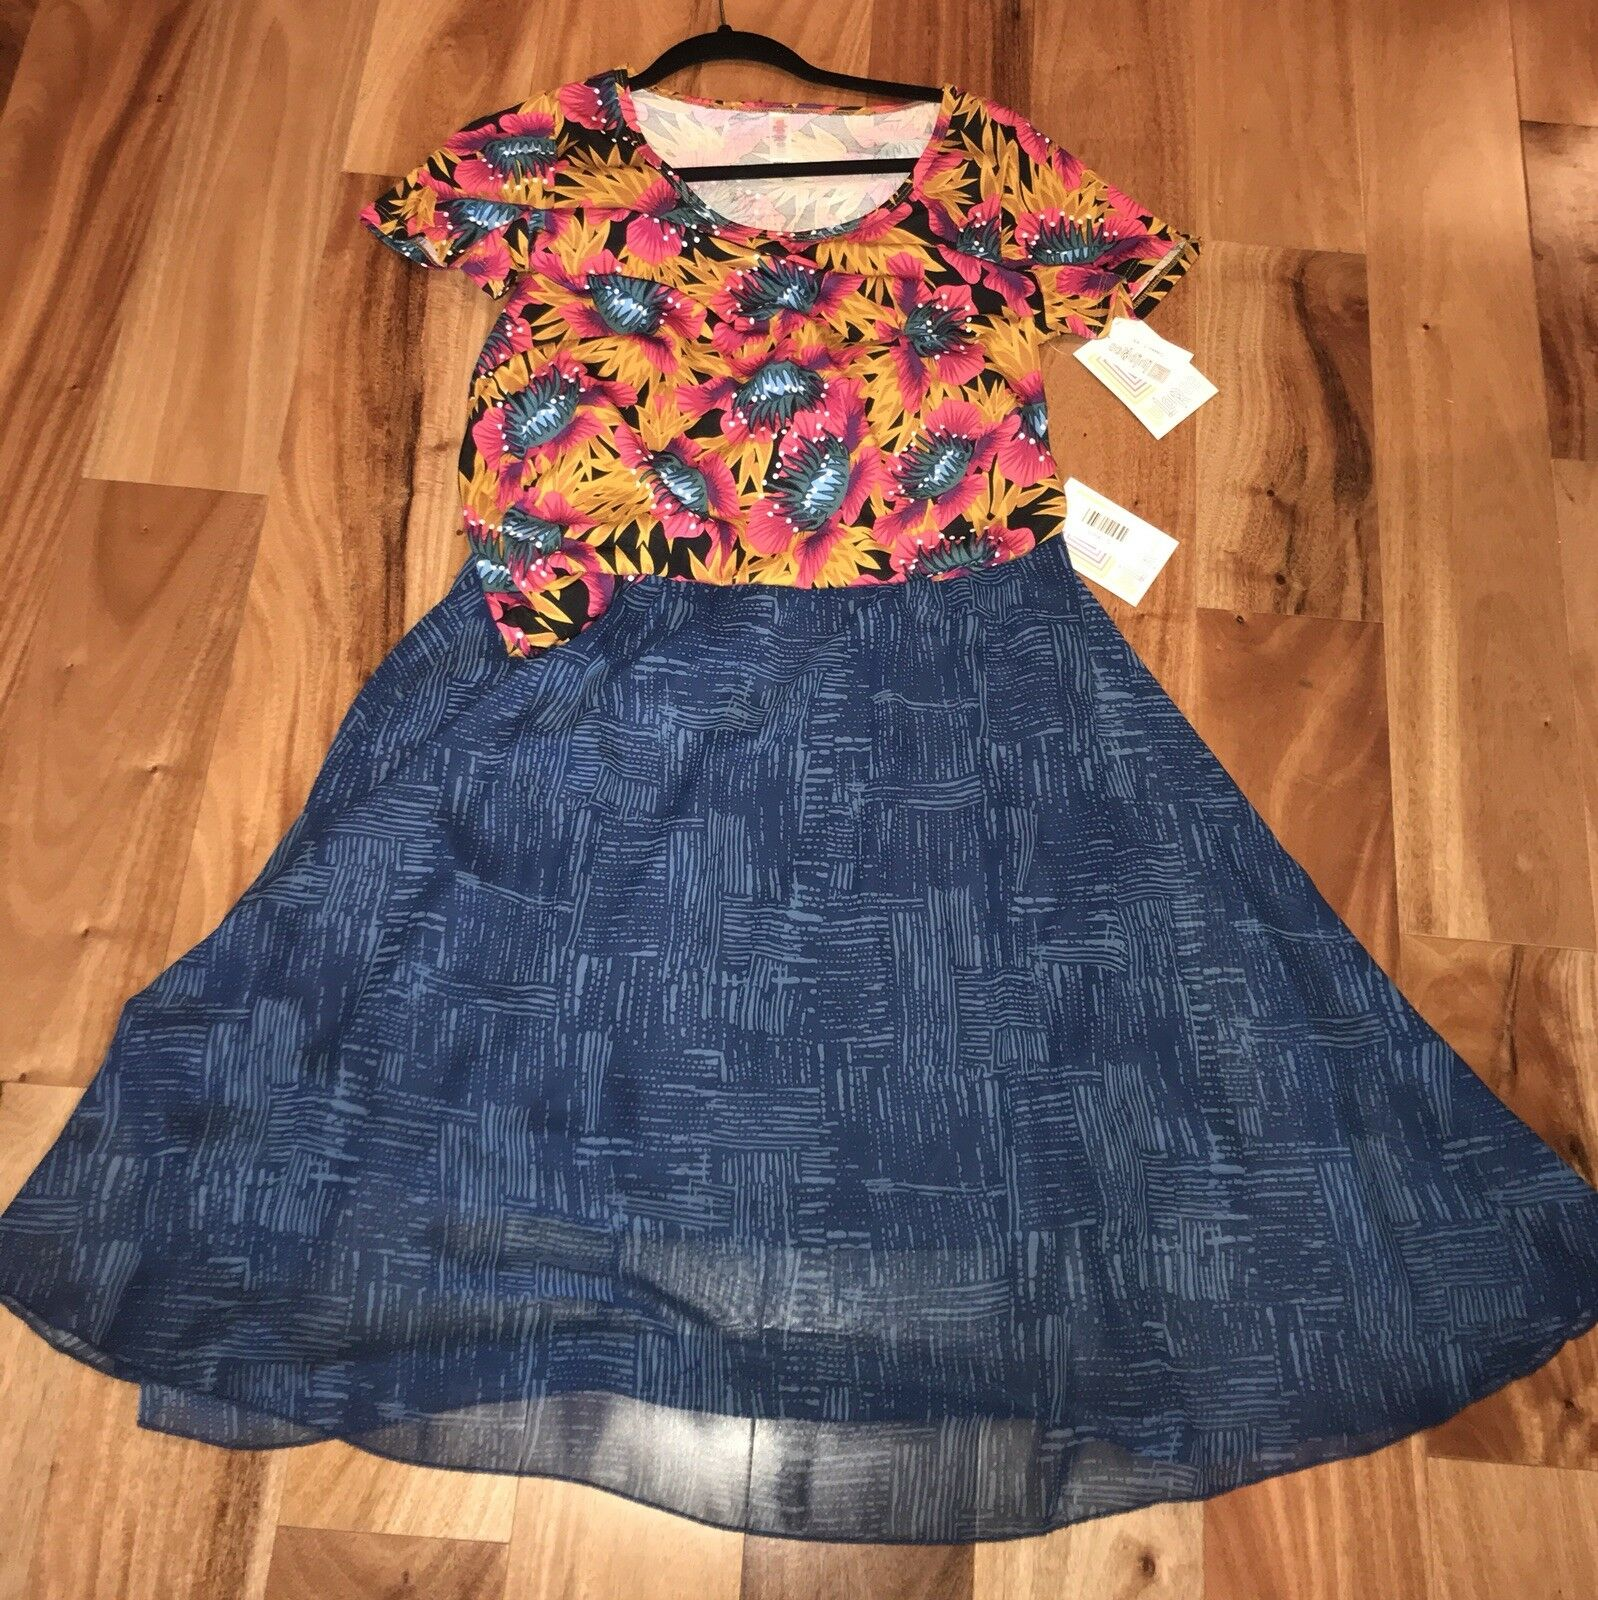 NWT LuLaRoe Lola Skirt SIZE SMALL bluee And XS Classic T BEAUTIFUL Floral Print